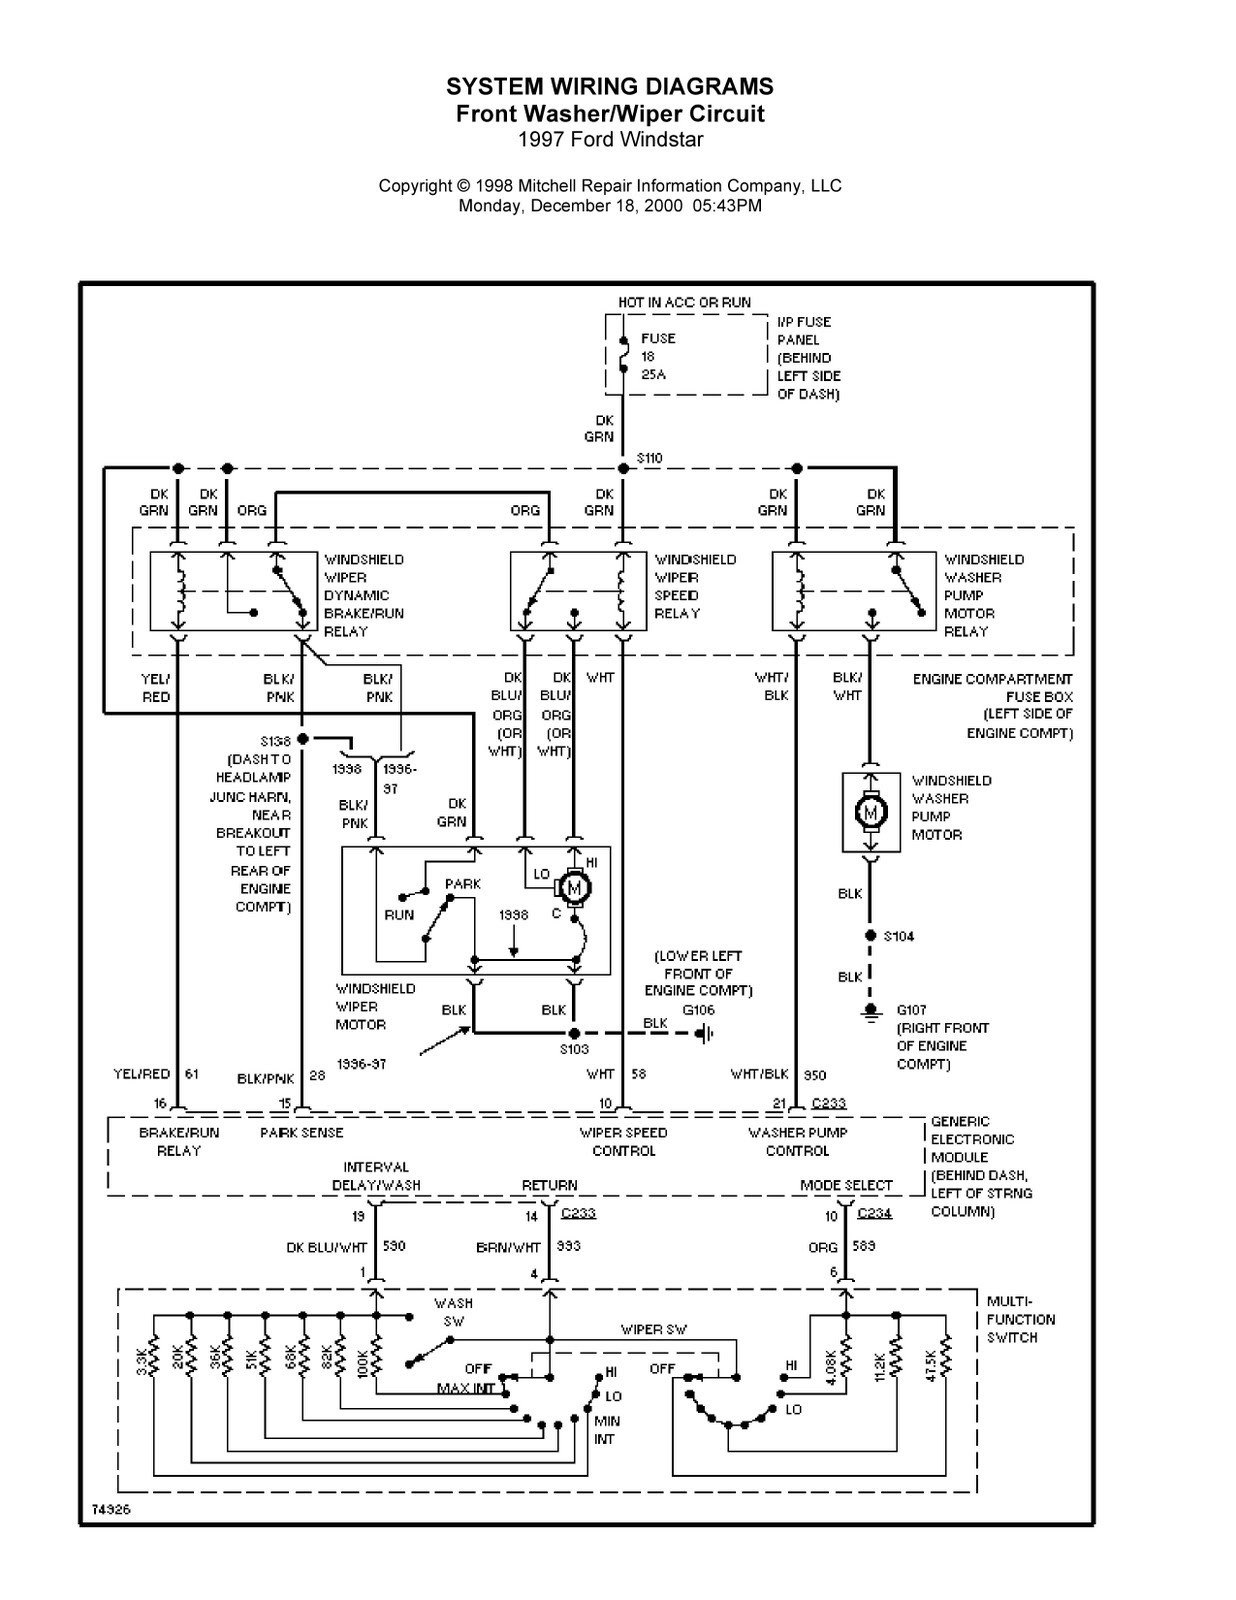 Ford Windstar 3 8 Coil Pack To Engine Wiring Diagram